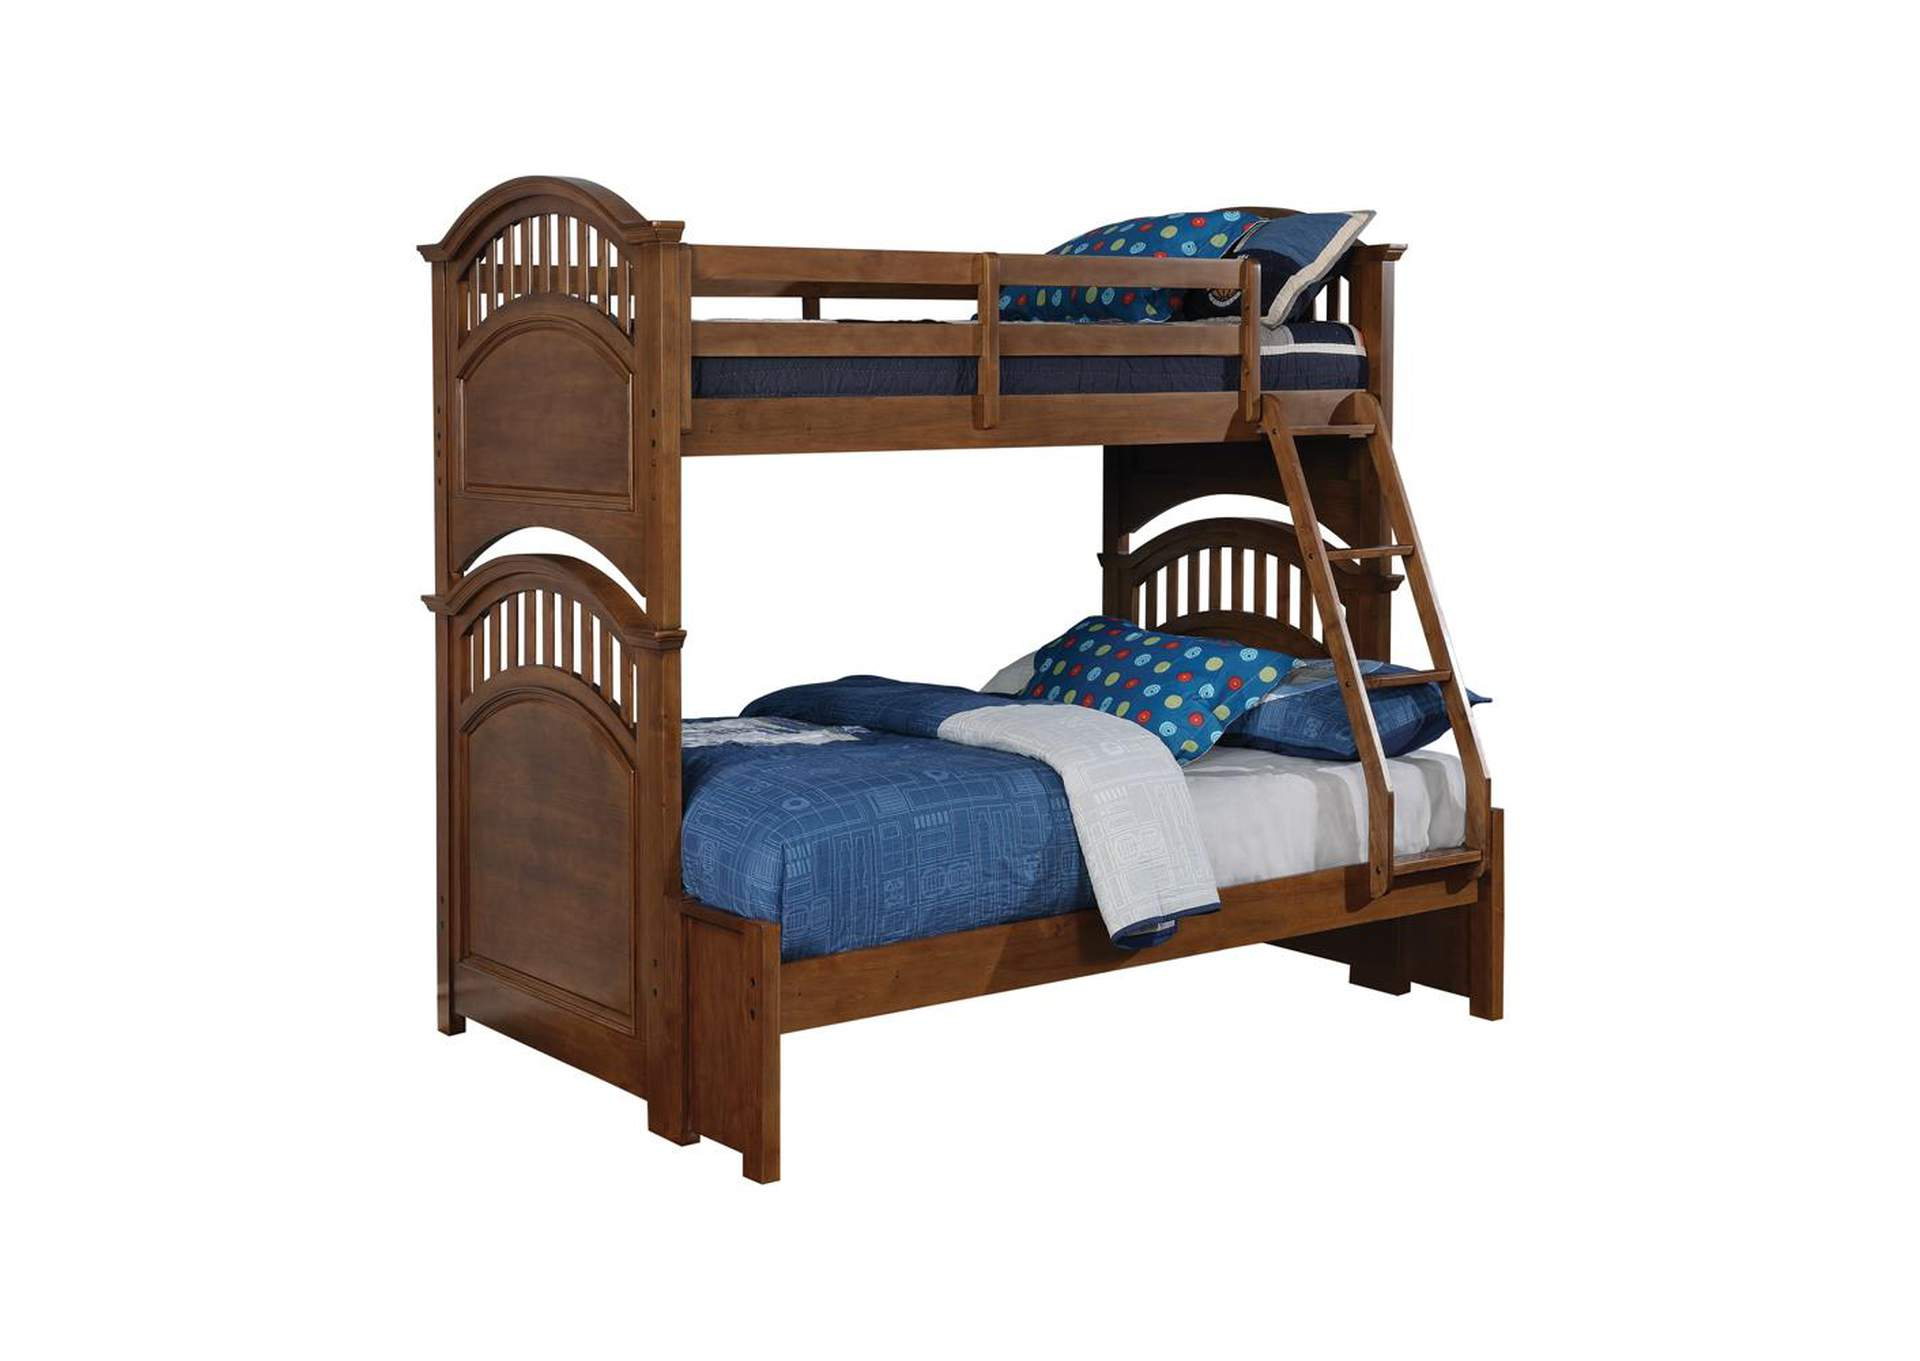 Millbrook Halsted Casual Walnut Twin-over-Full Bunk Bed,Coaster Furniture